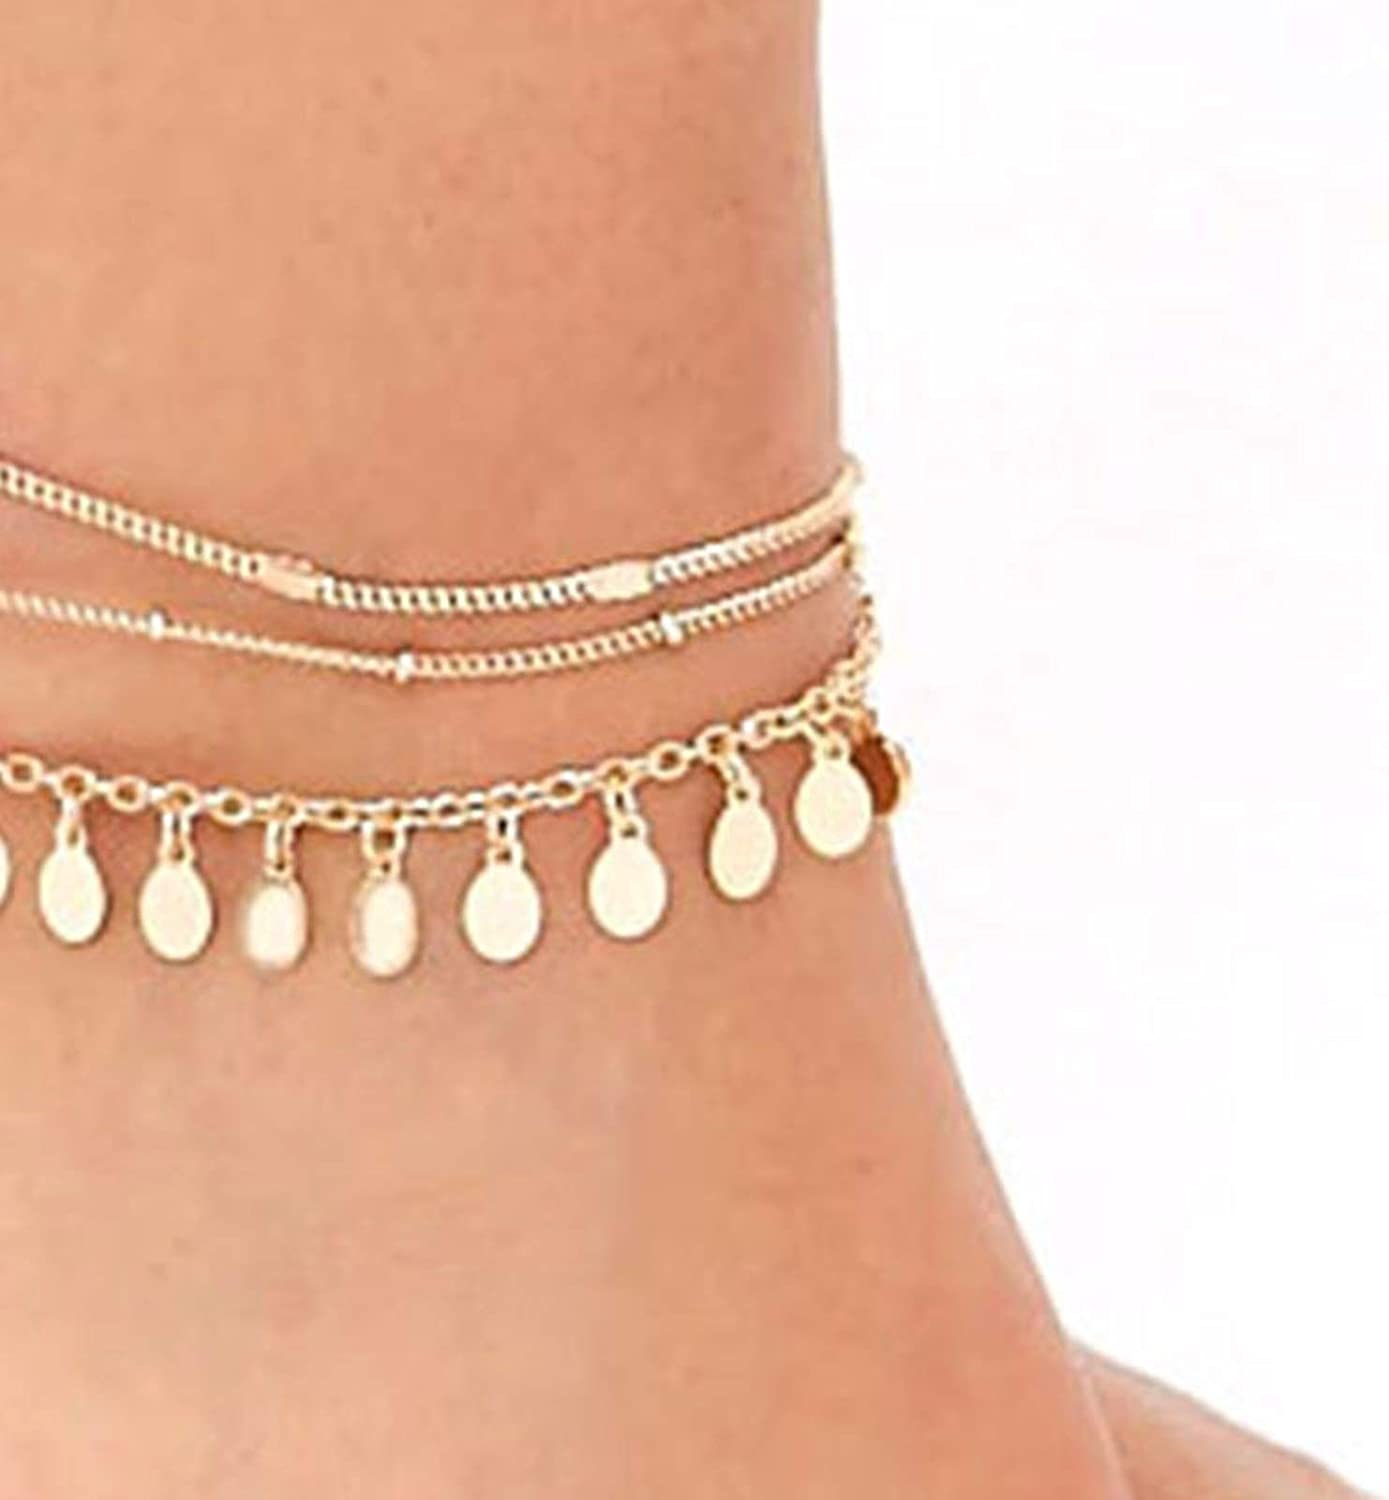 AMDXD Anklets for Women Friendship Gold Plated Multi-Layer Pearl Anklet Chain Summer Jewelry for Teens Gold 21CM